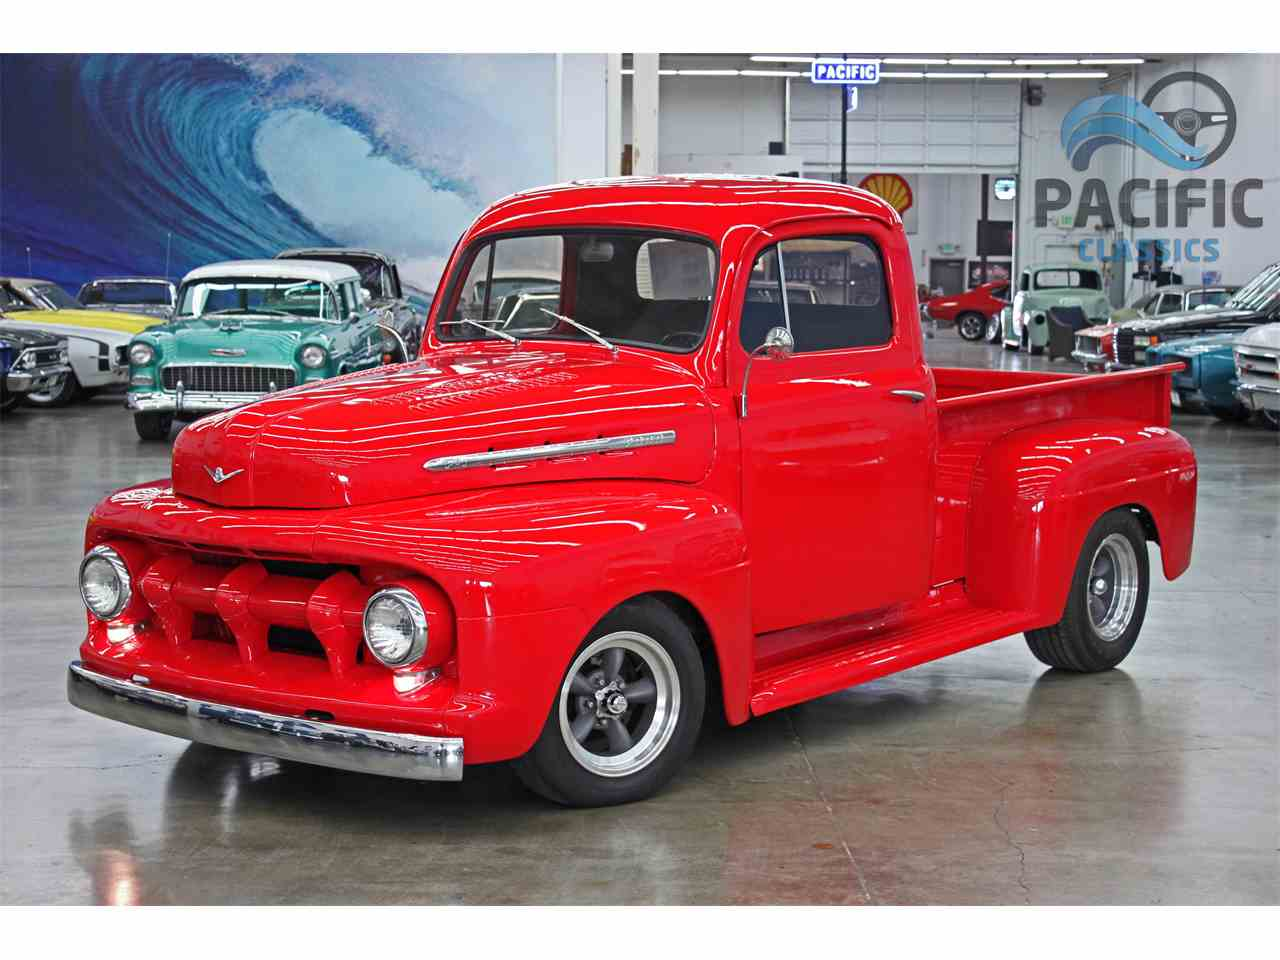 1950 ford f100 for sale craigslist - 1952 Ford F1 1007732